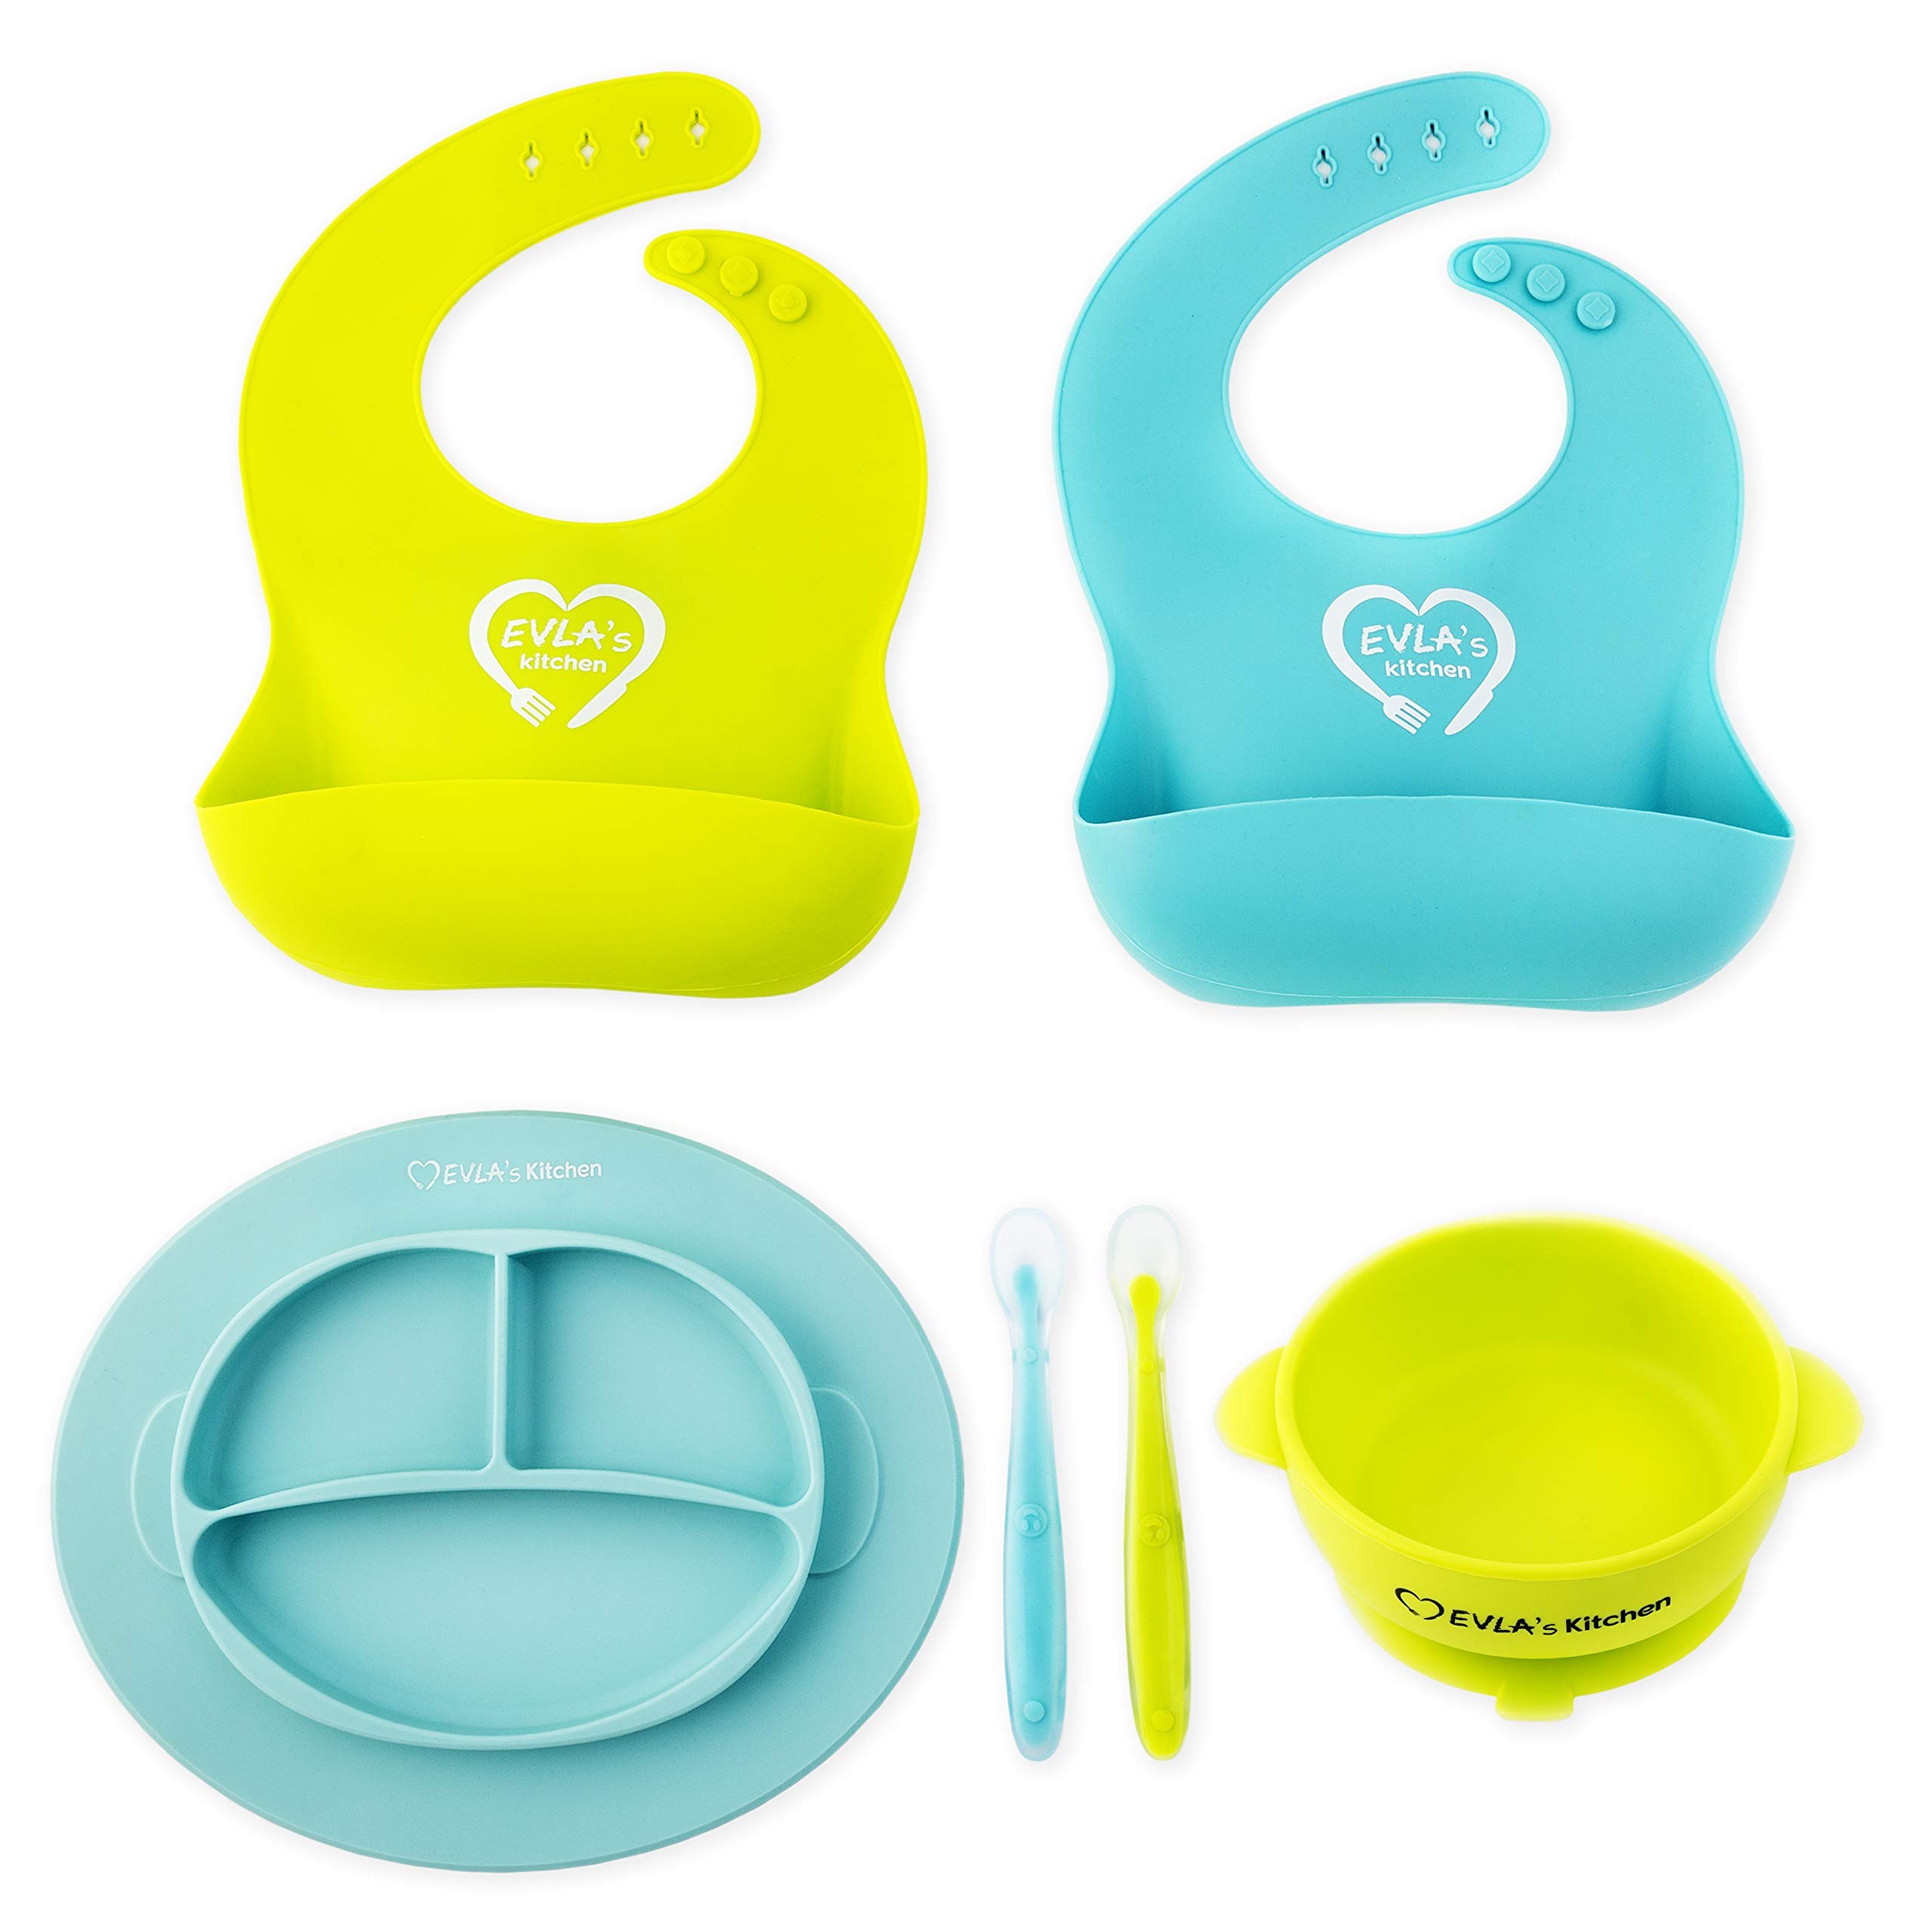 Best Self Feeding Spoon 2019 Our Top Picks And Buyers Guide Boon Pulp Feeder Green Blue Baby Set Silicone Bib Plates Bowls Spoons Divided Plate Suction Bowl Soft Aids Adjustable Easily Wipe Clean Spend